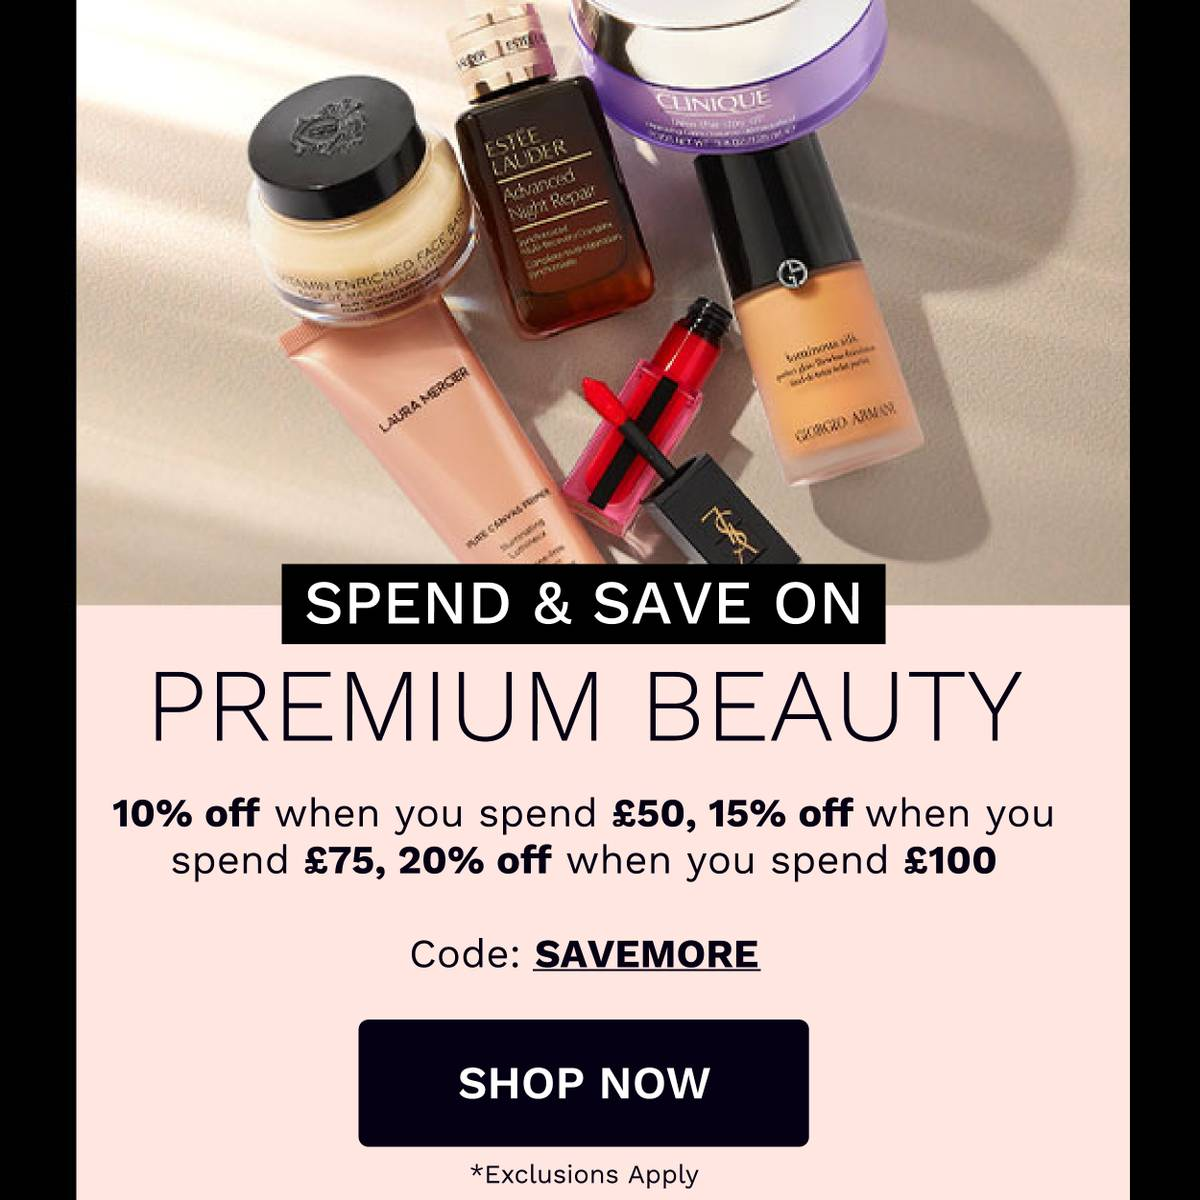 Premium Beauty - Save up to 20%*